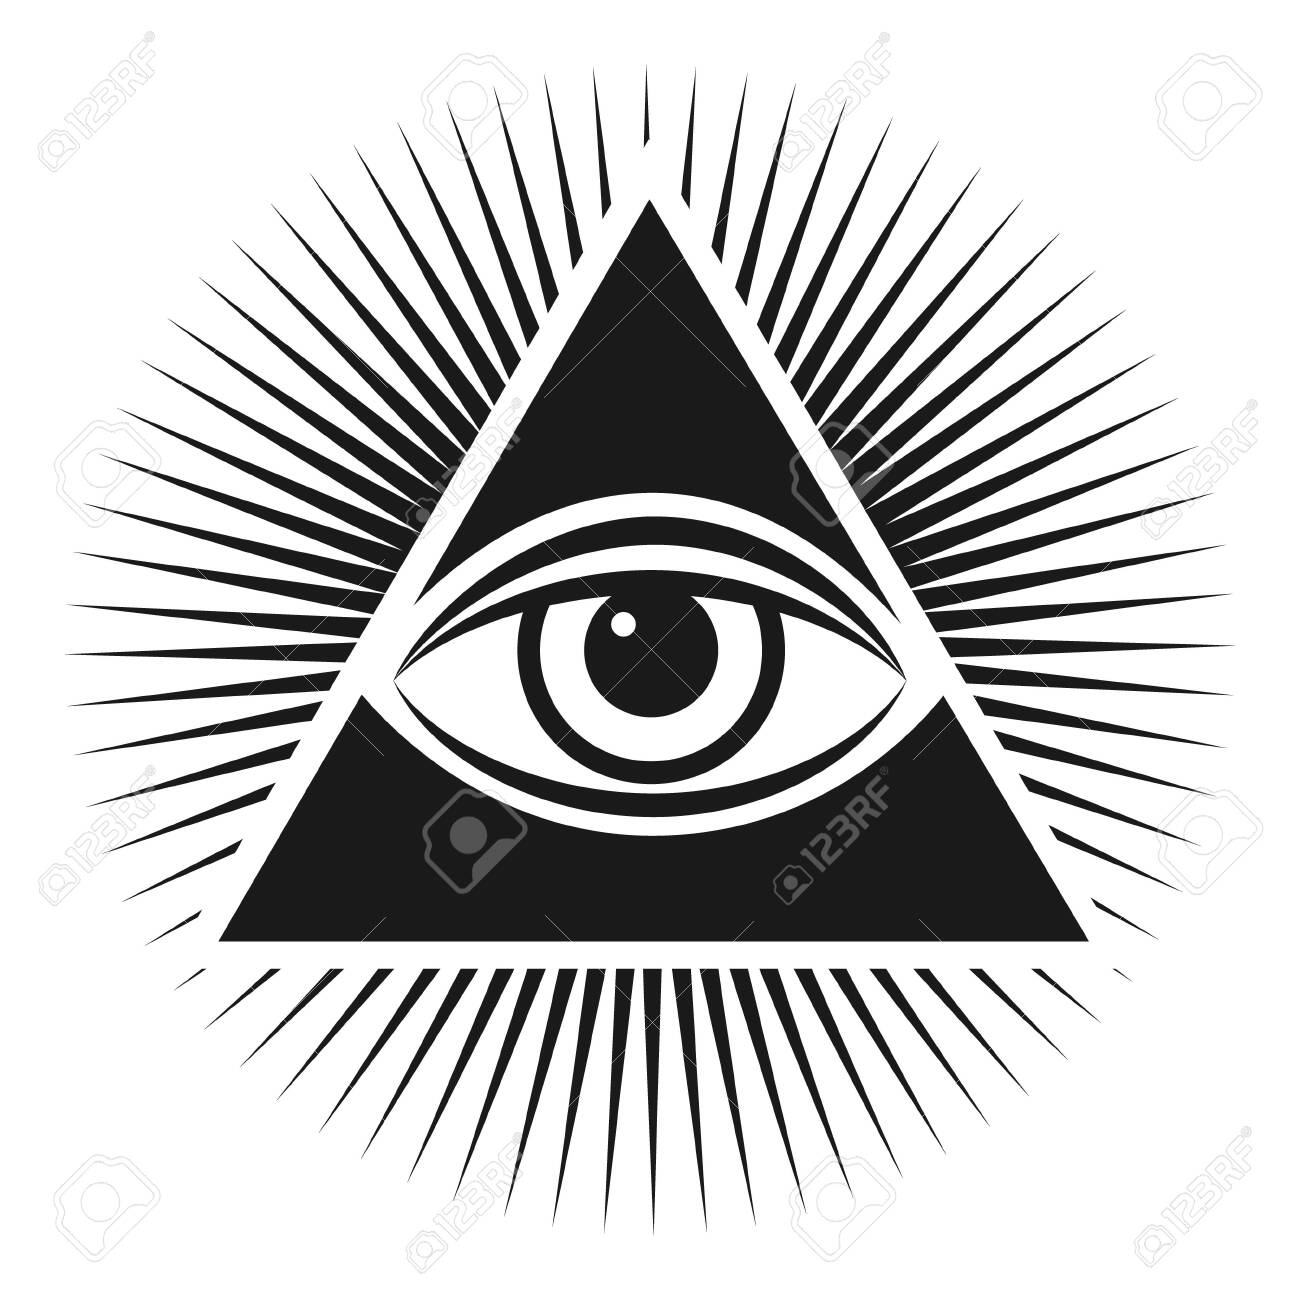 Masonic symbol The all-seeing eye inside the pyramid triangle icon. Vector illustration on a white background - 146648411